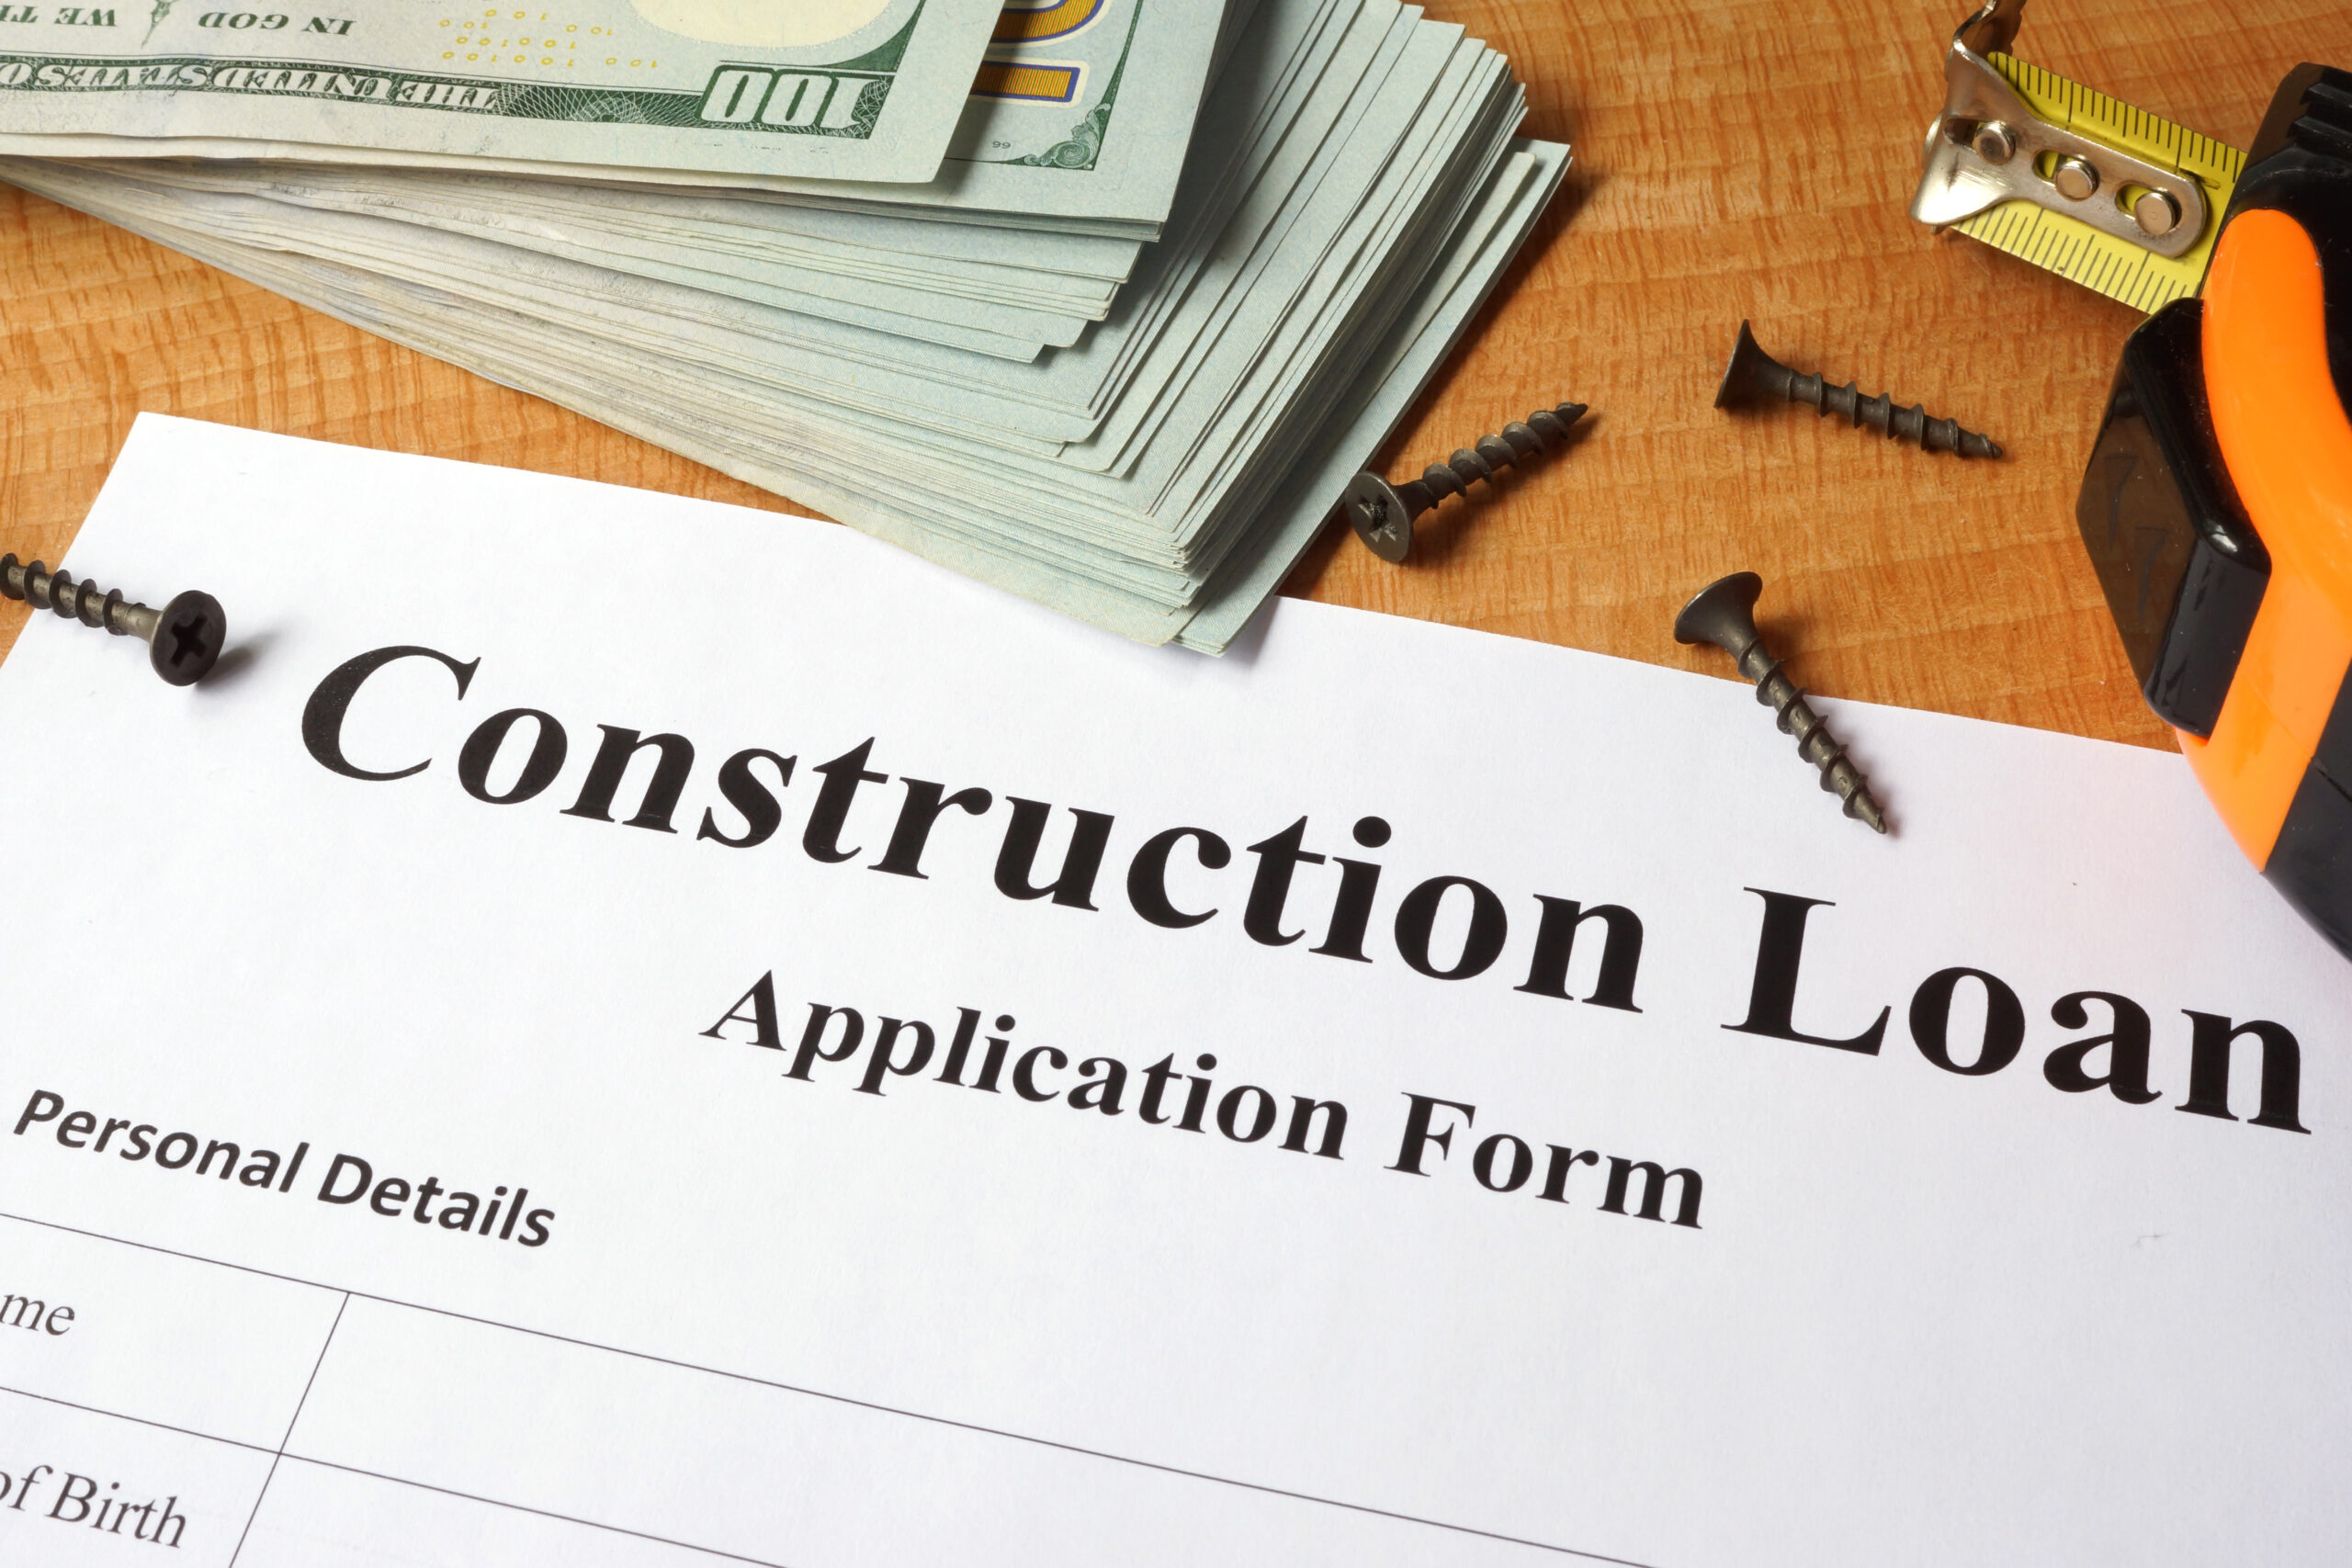 Loand document for construction projects and home building